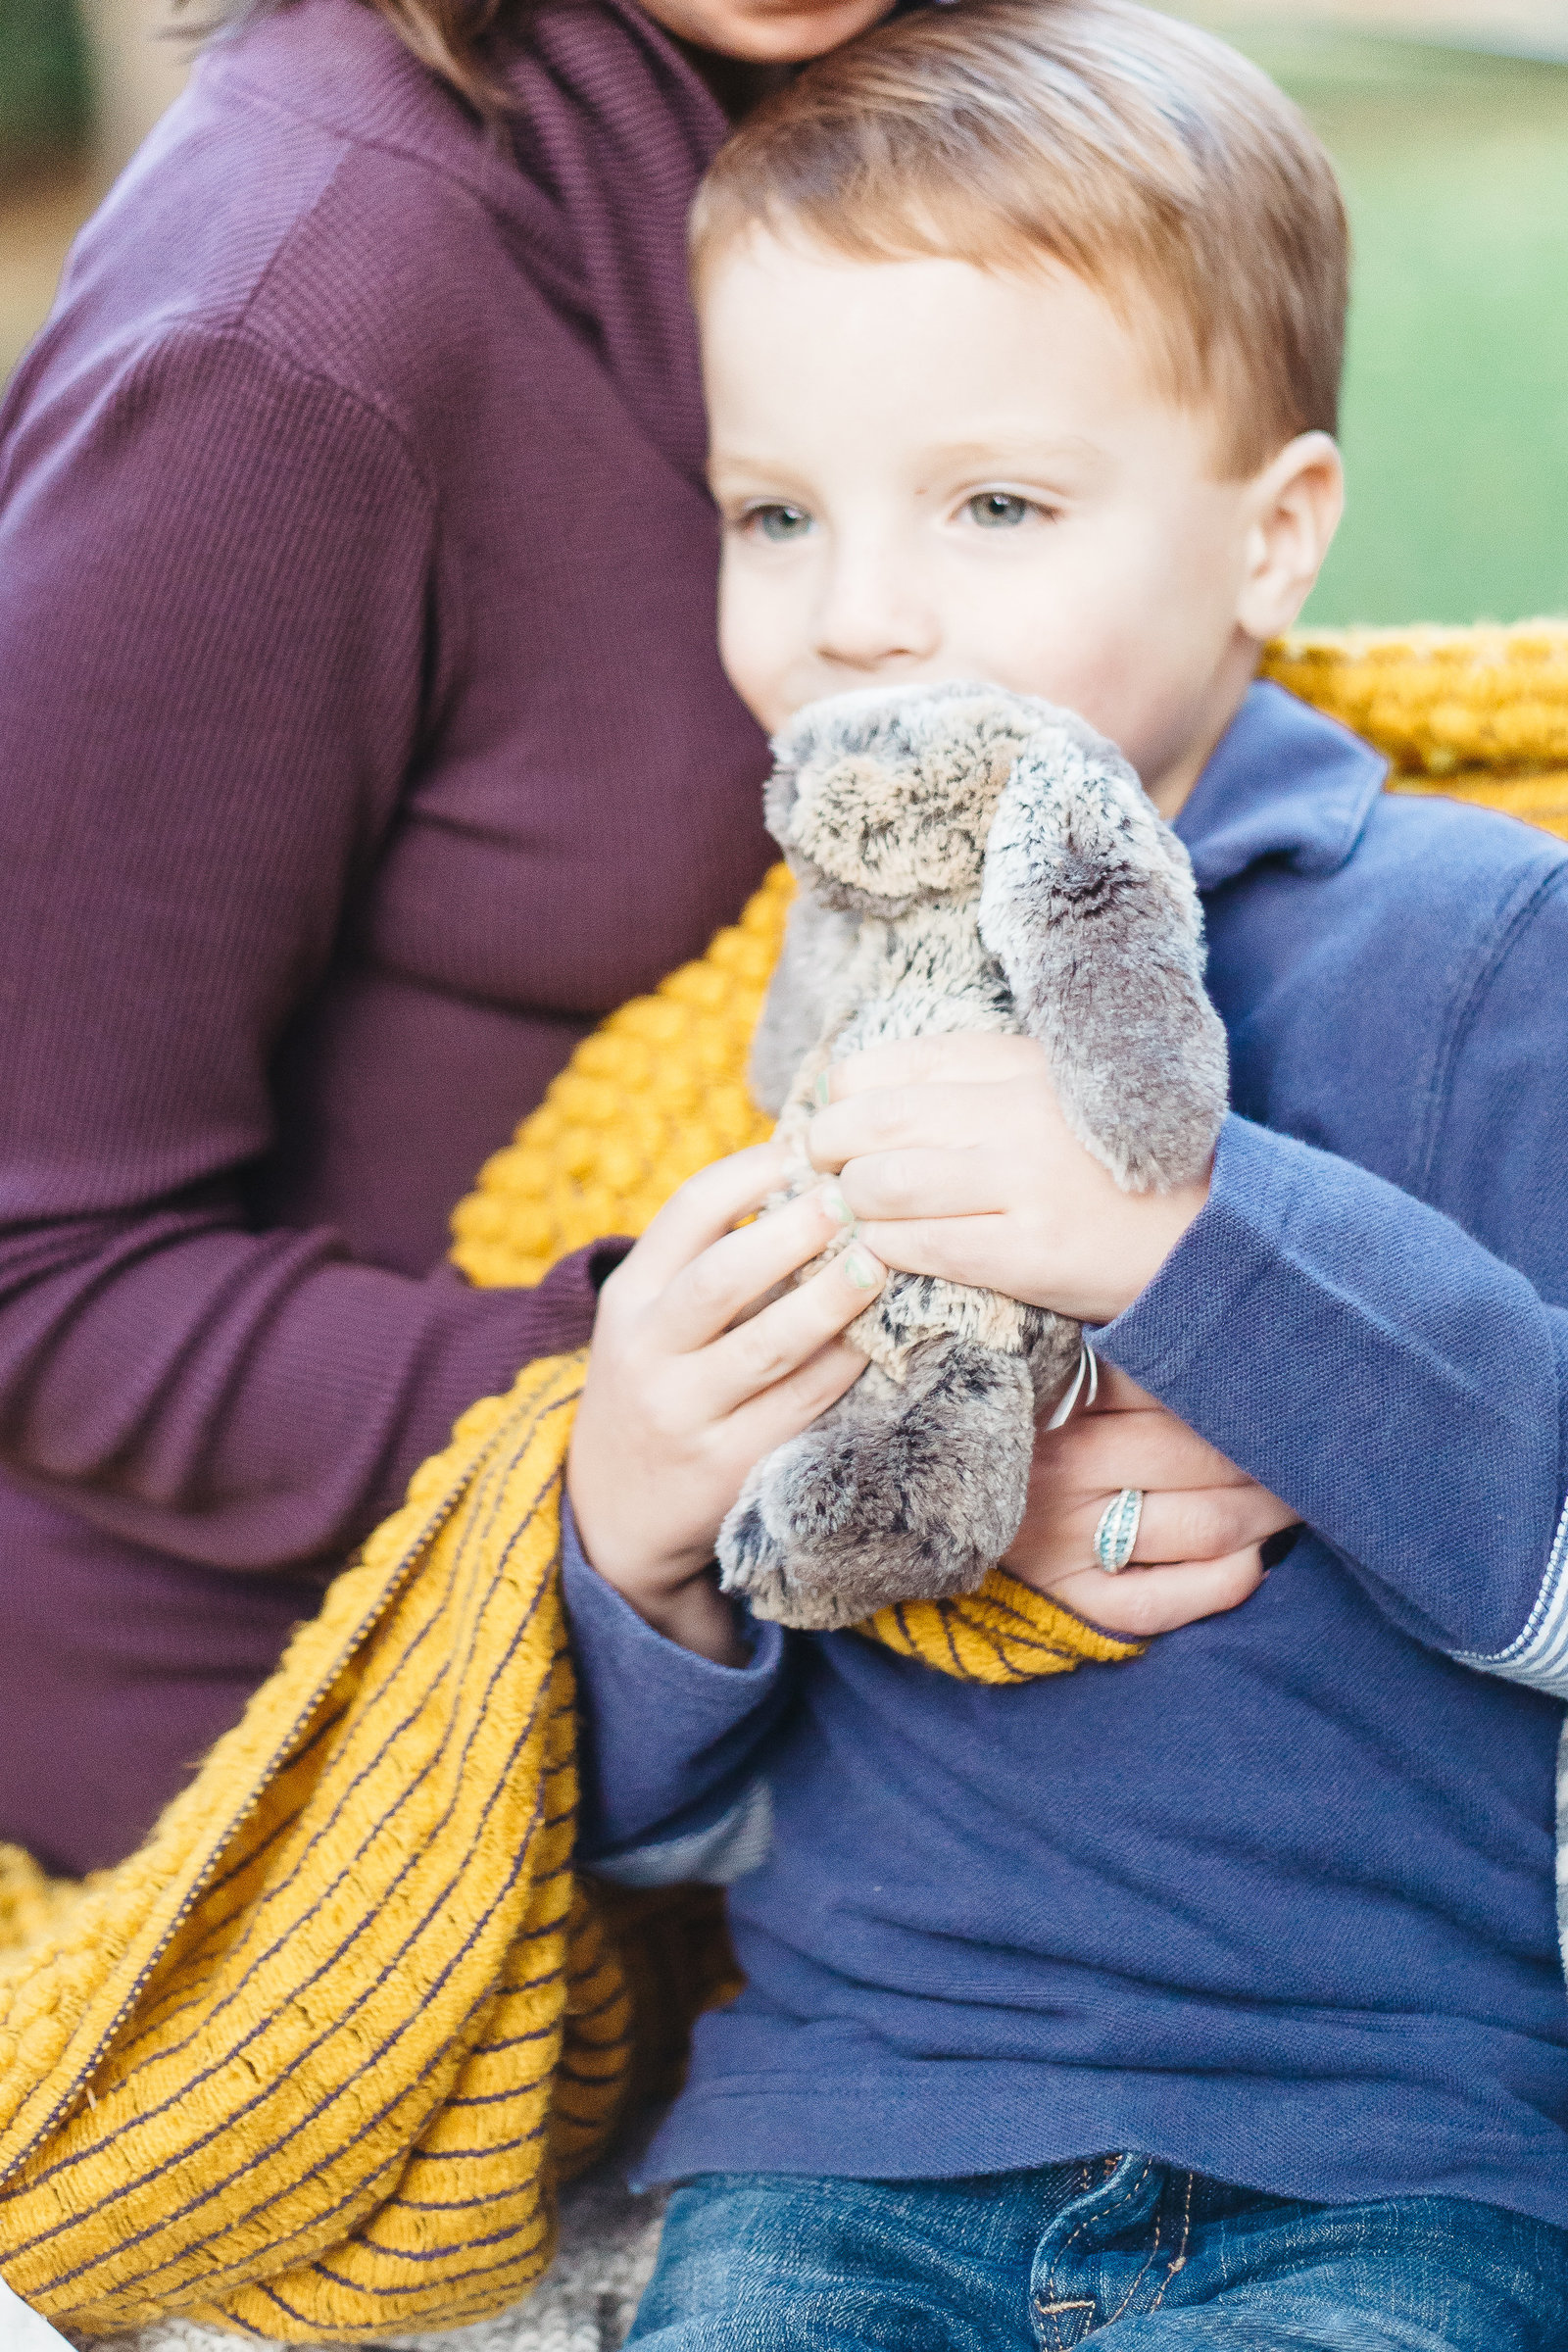 A small boy cuddling a stuffed rabbit in his mother's arms